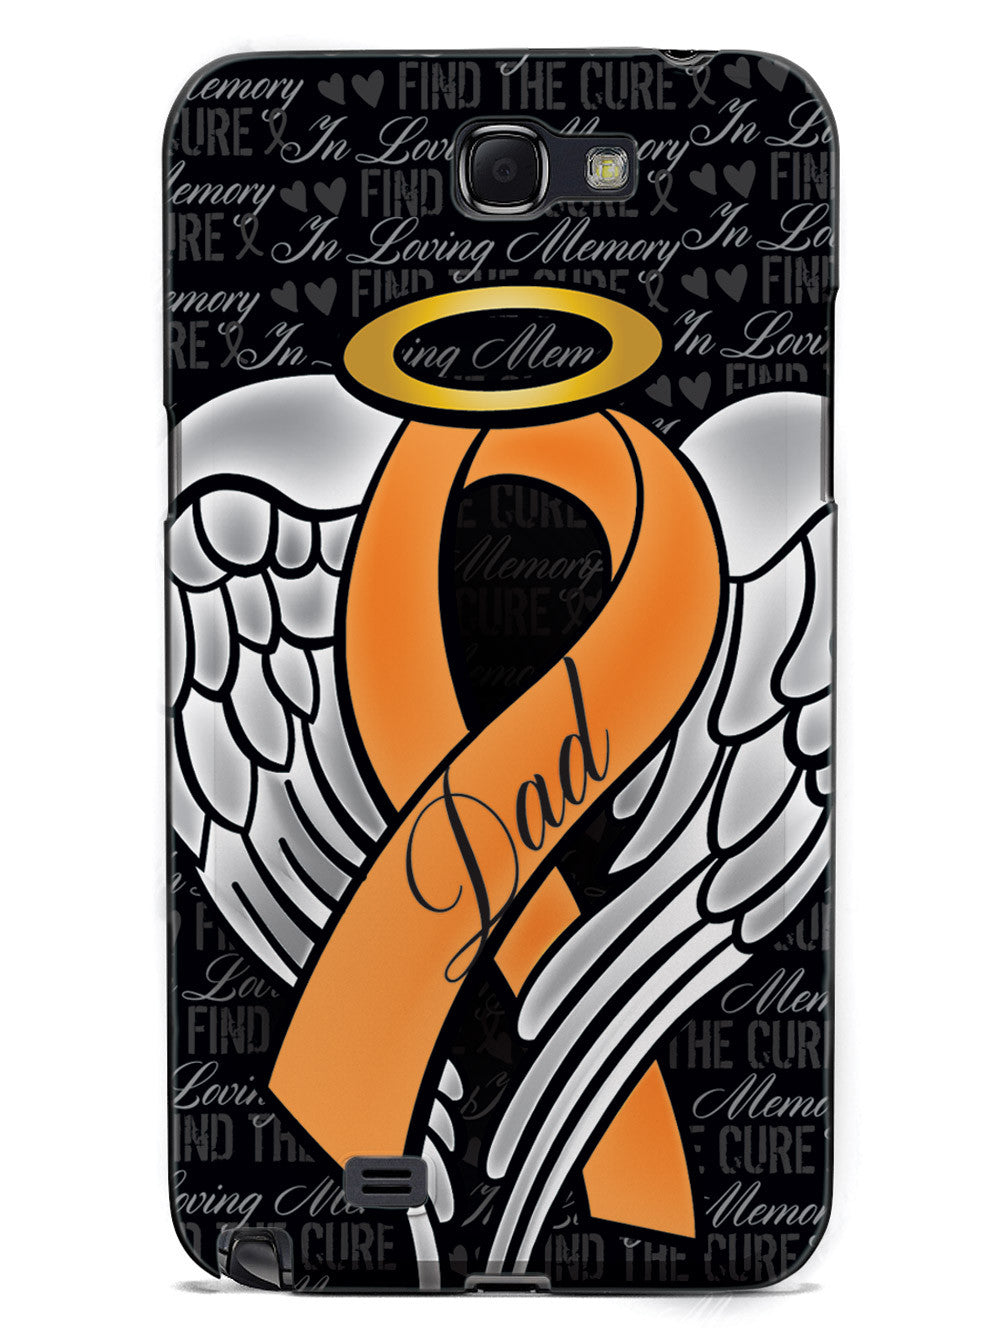 In Loving Memory of My Dad - Orange Ribbon Case